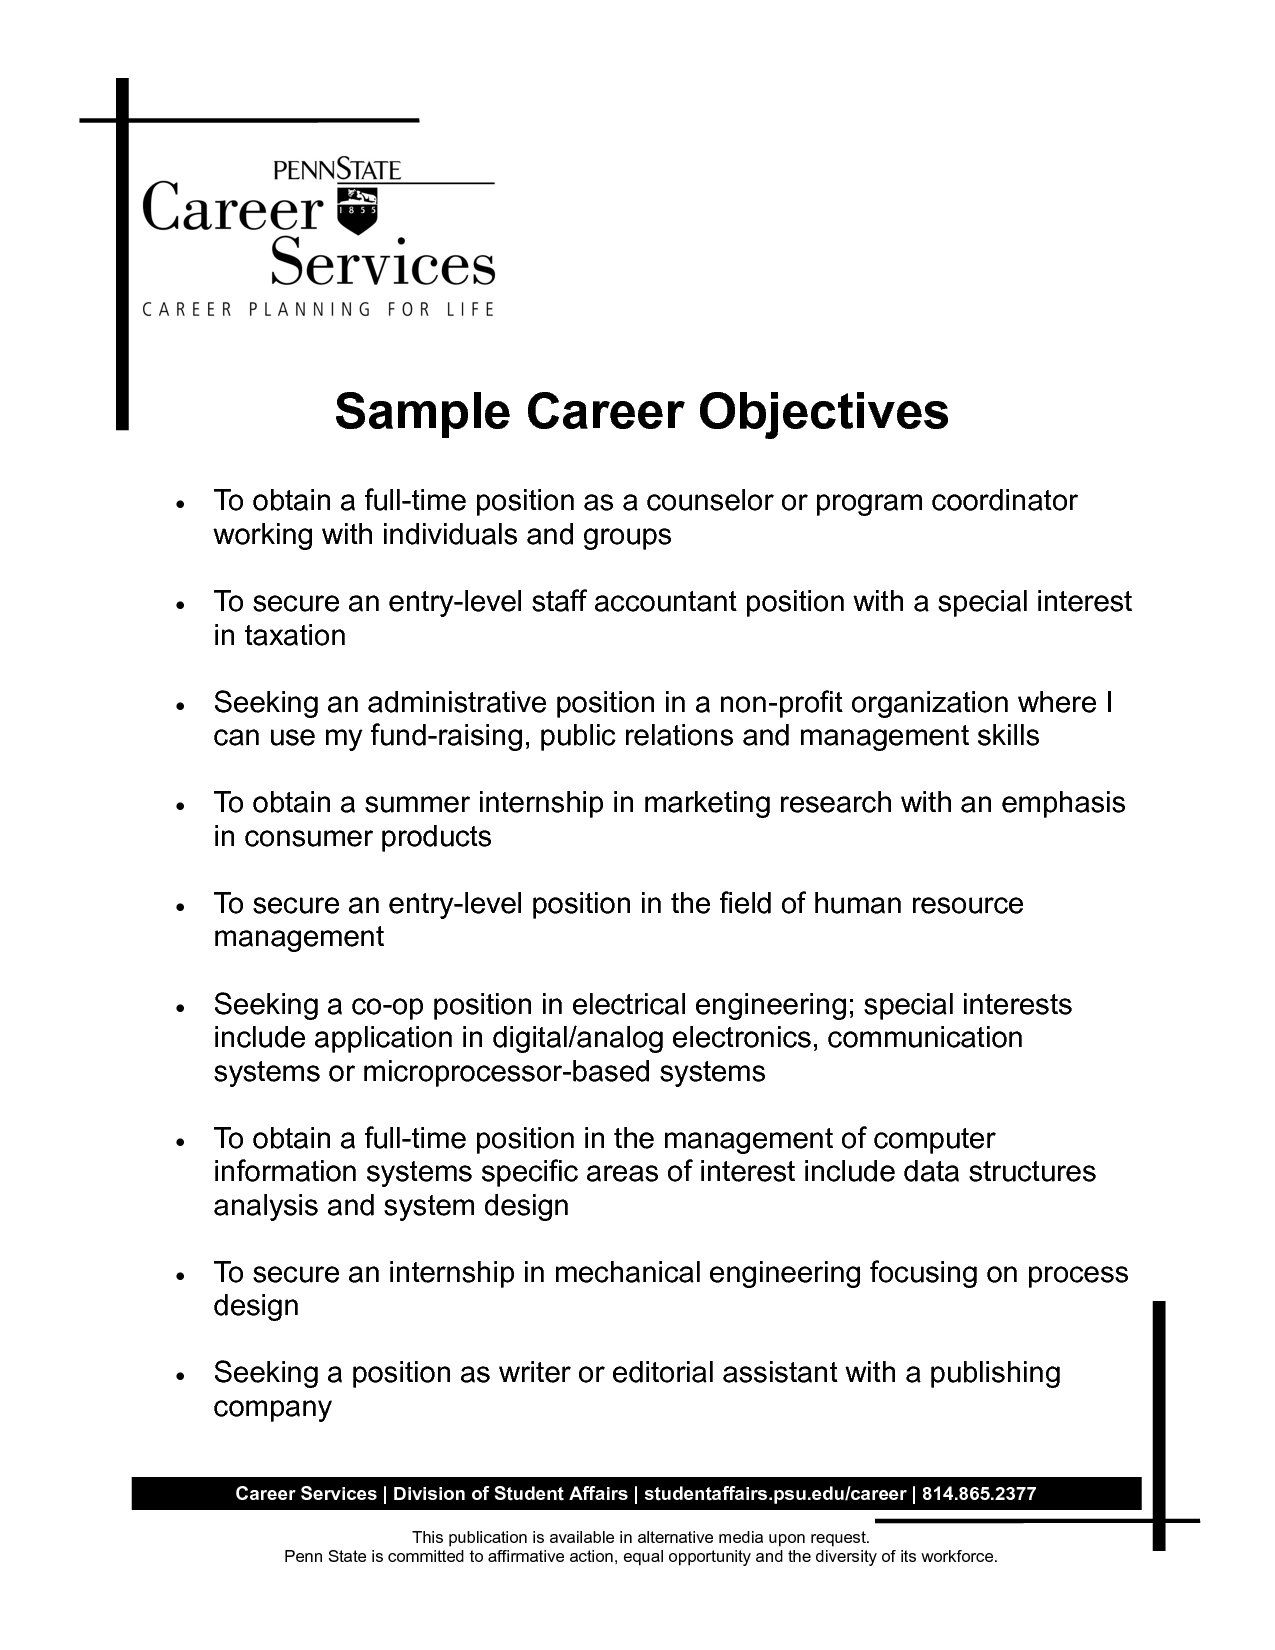 Best Objective Statements For Resumes How To Write Career Objective With Sample